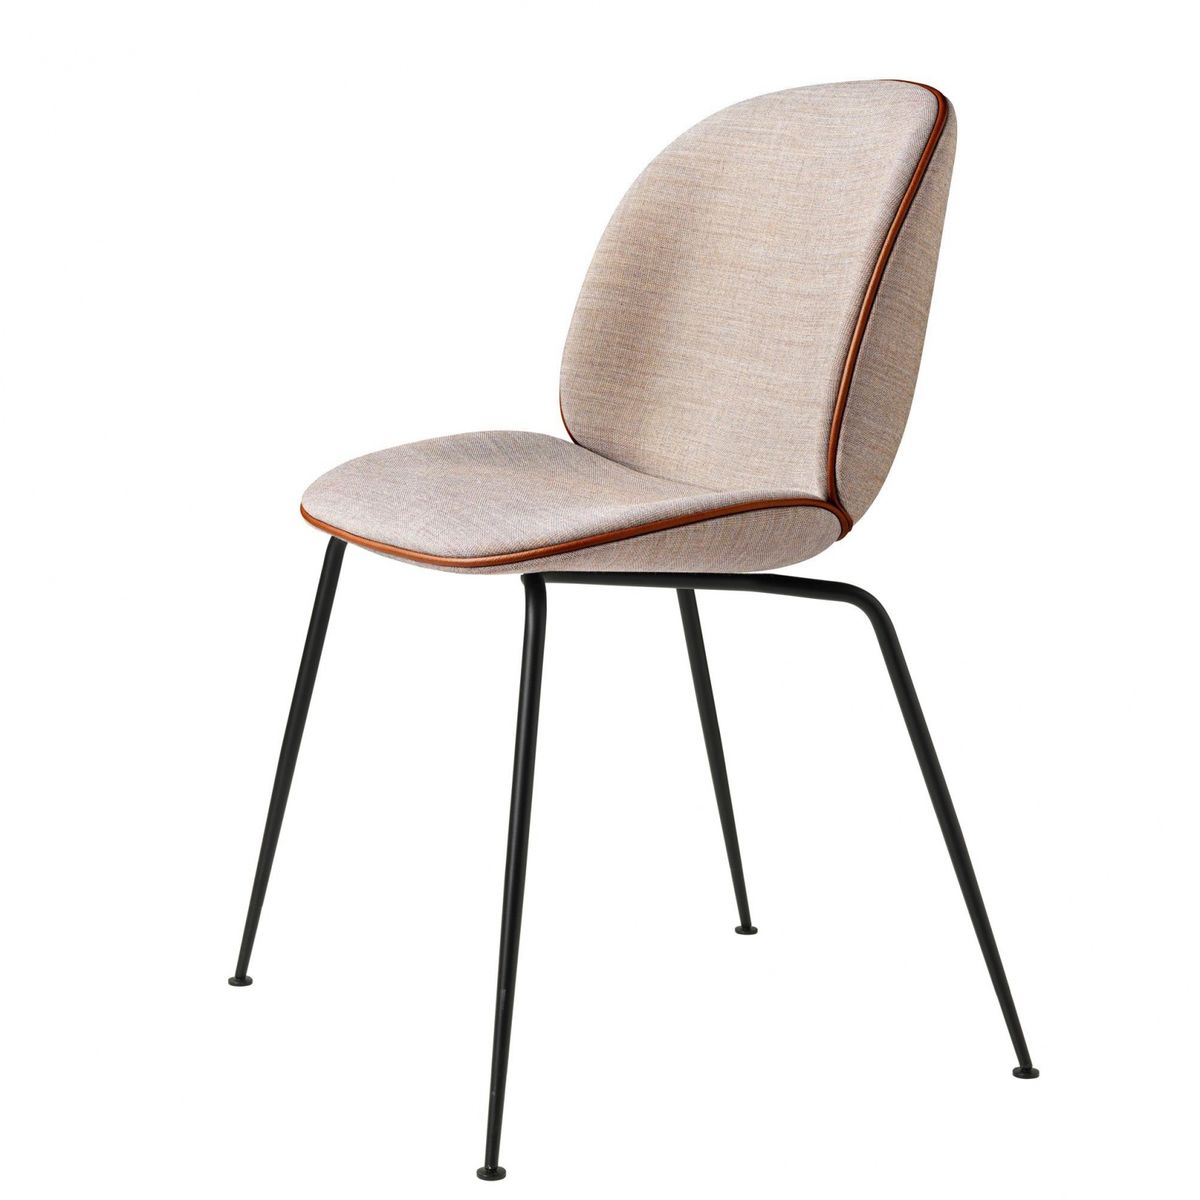 Beetle Chair Gubi AmbienteDirectcom : none1200x1200 ID572465 dc6747a376dd4ea36d73f15f53fd9ba3 from www.ambientedirect.com size 1200 x 1200 jpeg 70kB